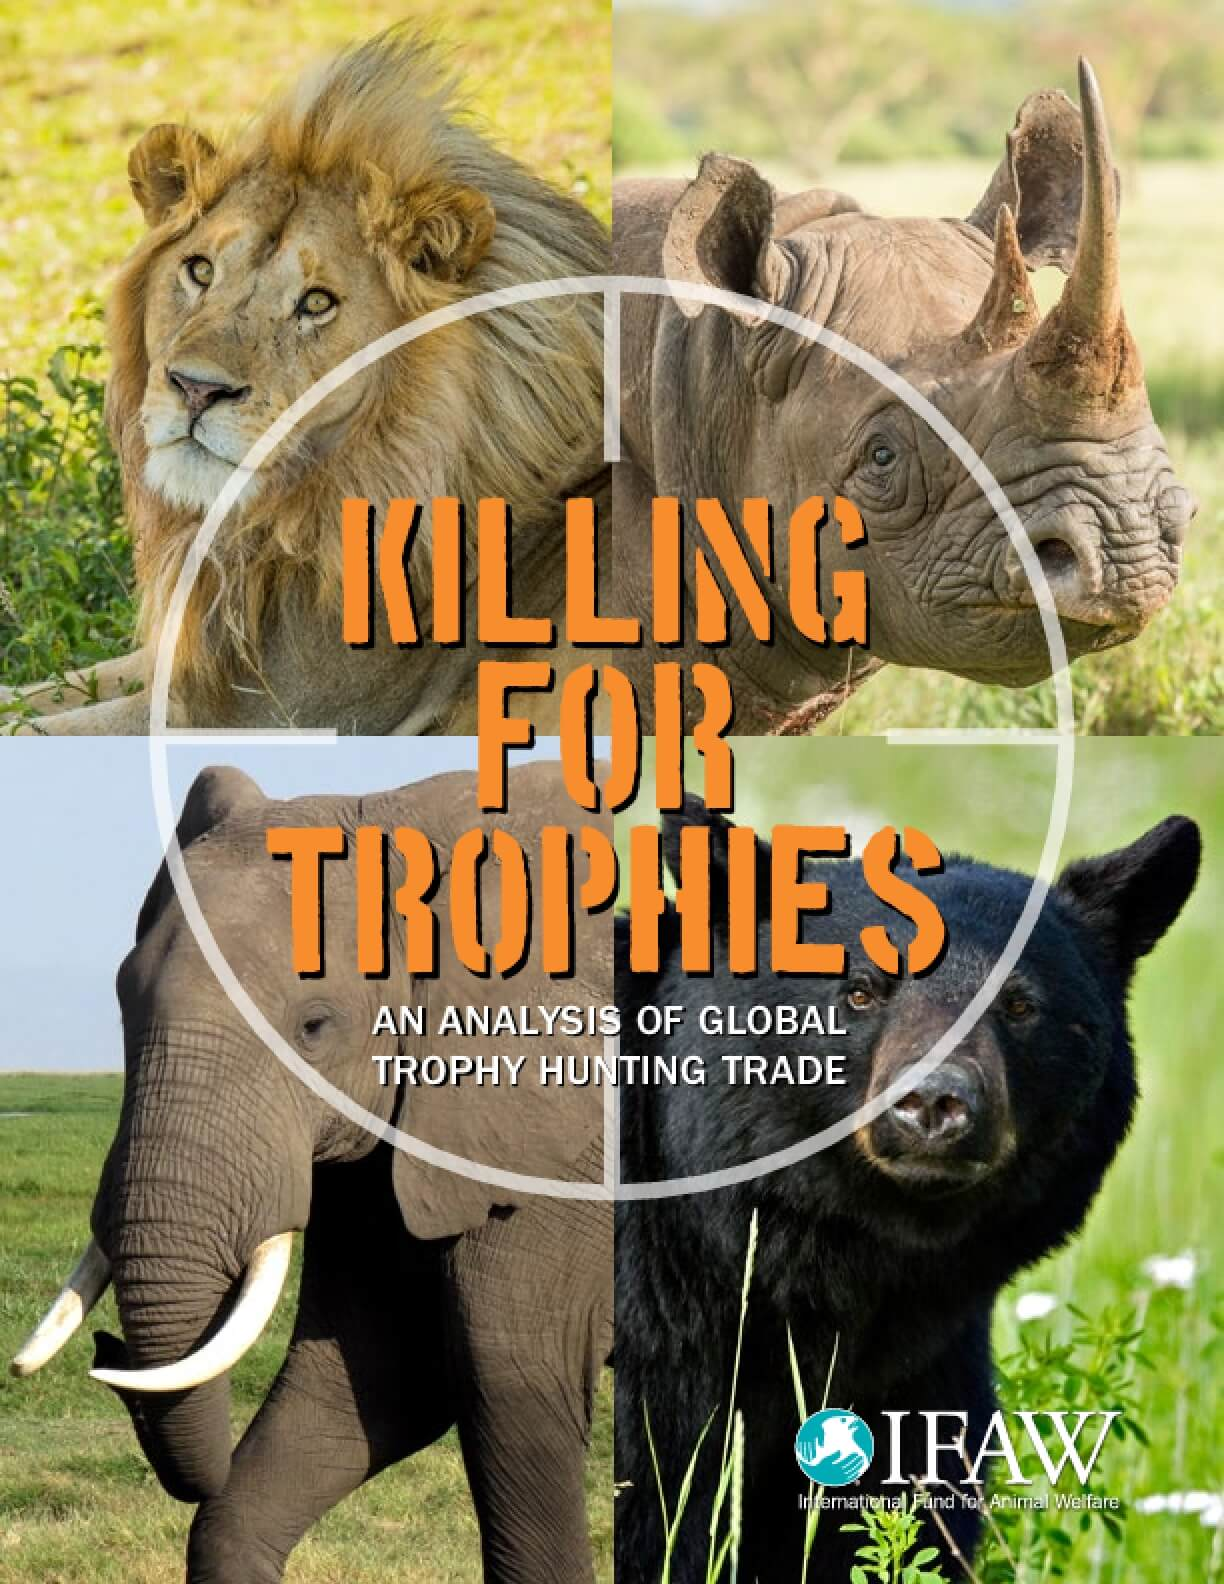 Killing for Trophies: An Analysis of Global Trophy Hunting Trade